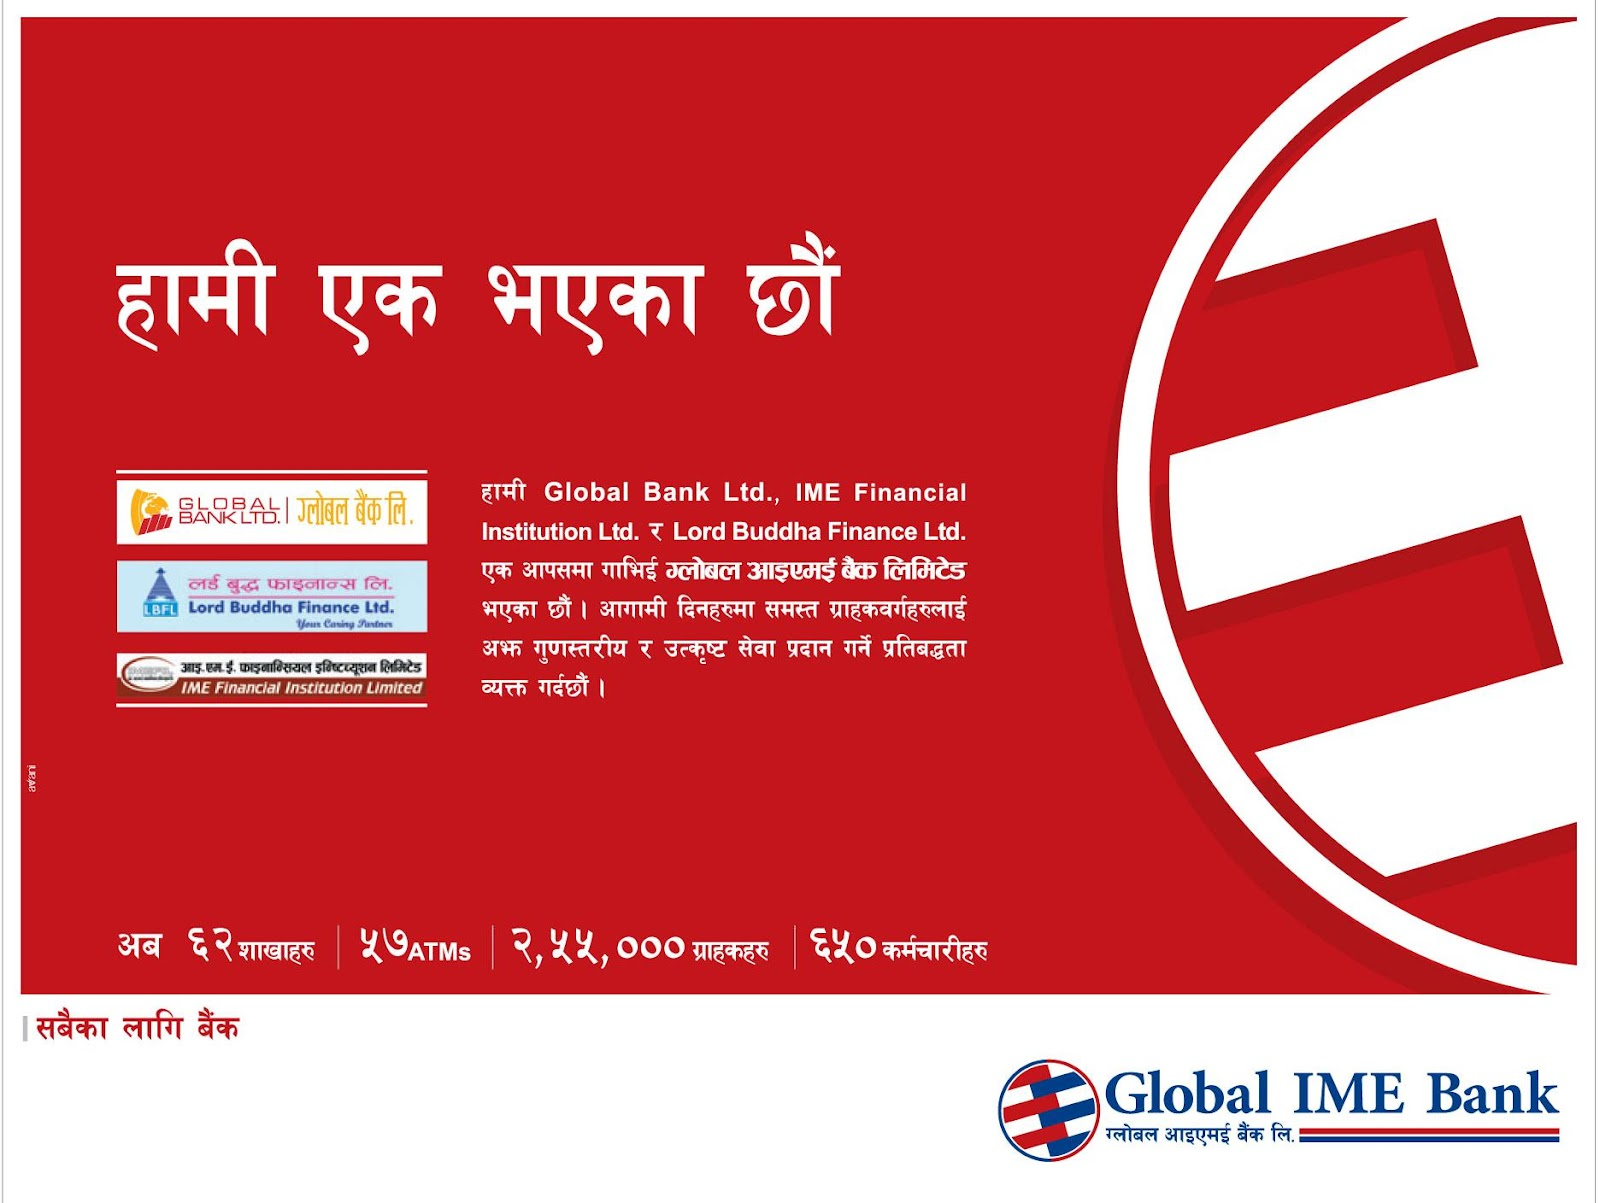 global ime bank nepal